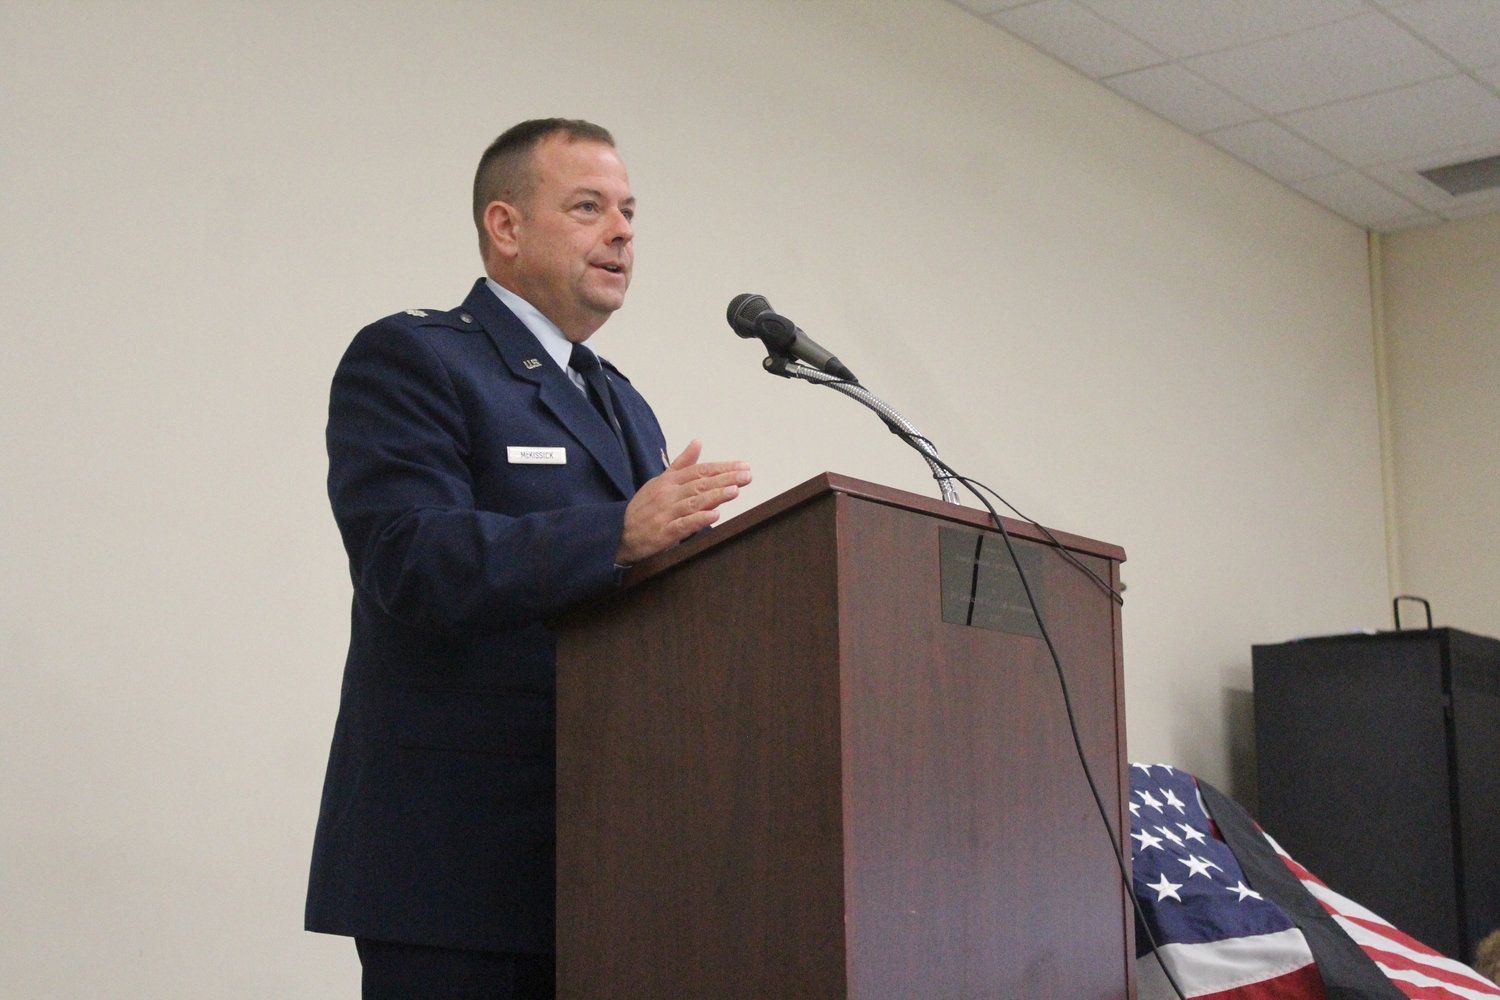 The keynote speaker was Commander of the 193 Special Operations Maintenance Group Eric McKissick.